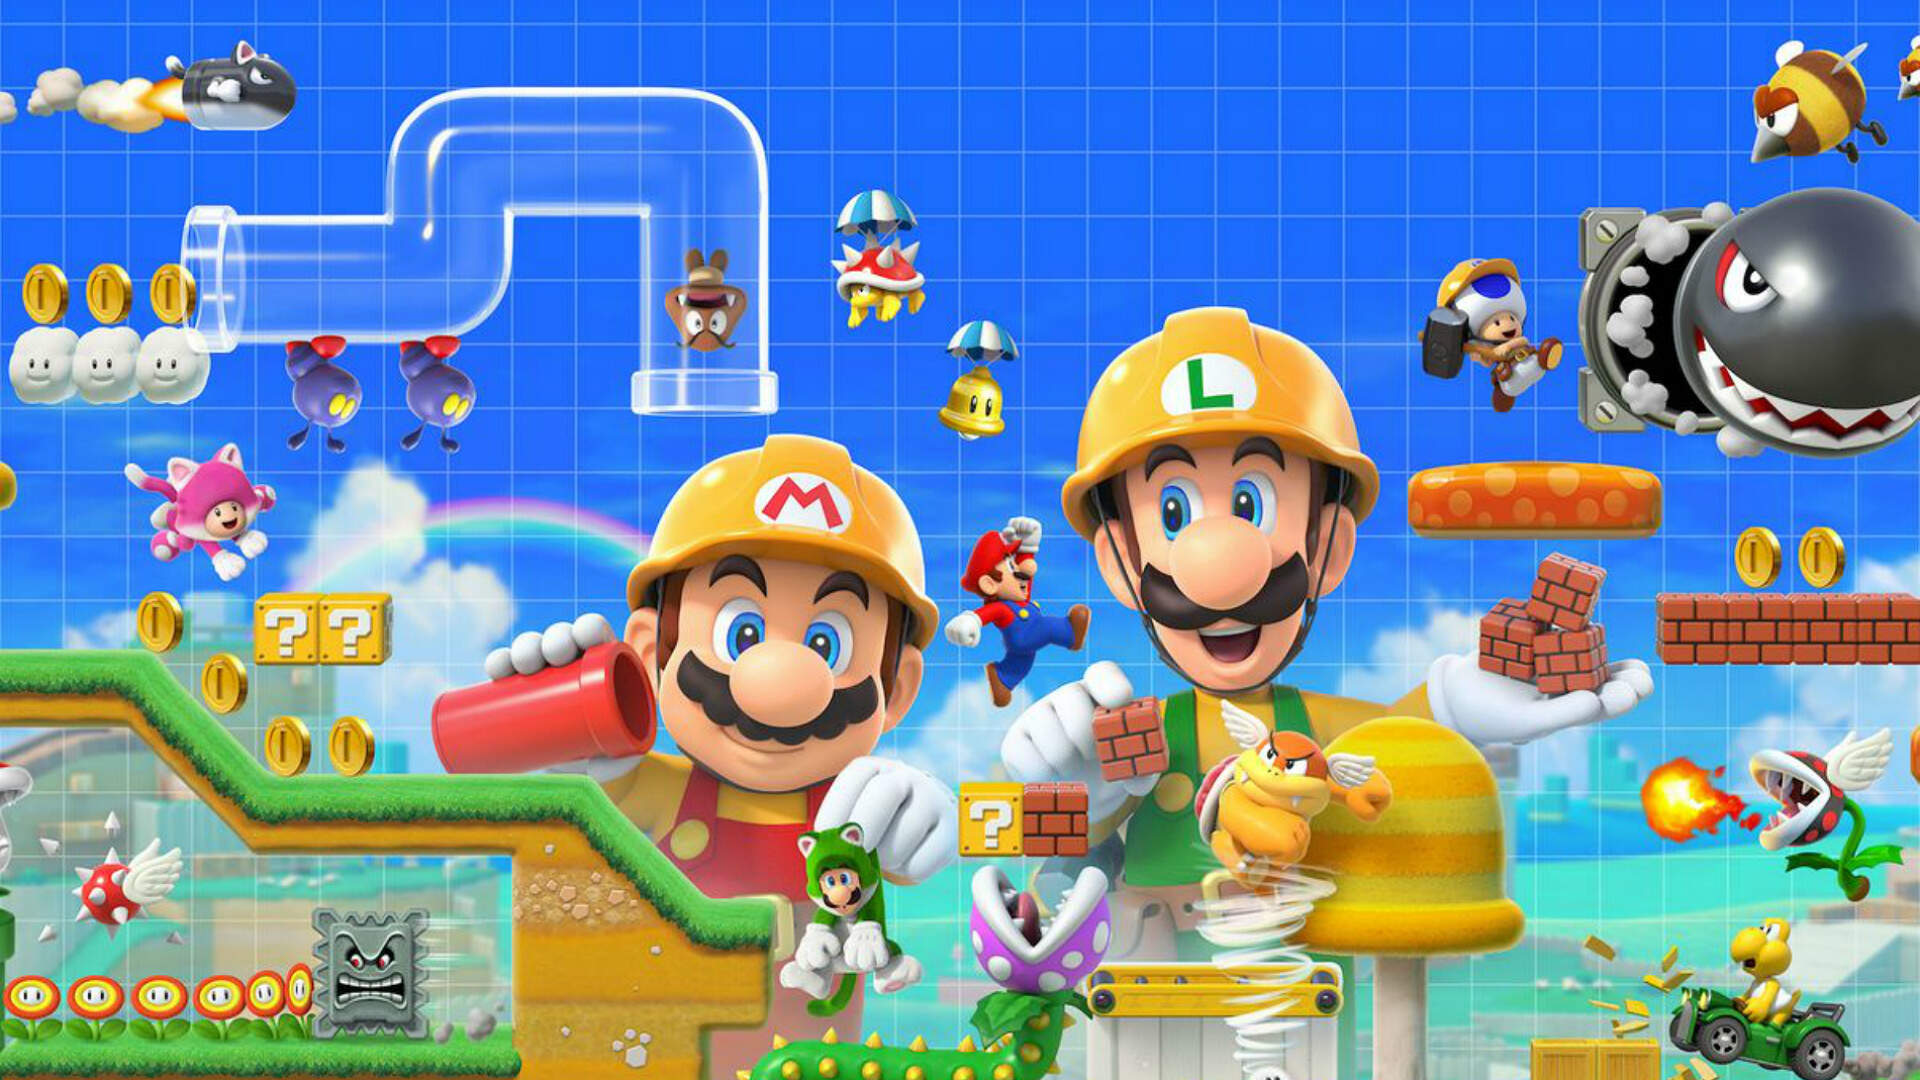 3Ds Future Releases mario maker 2 3ds: will mario maker 2 release on 3ds? | usgamer